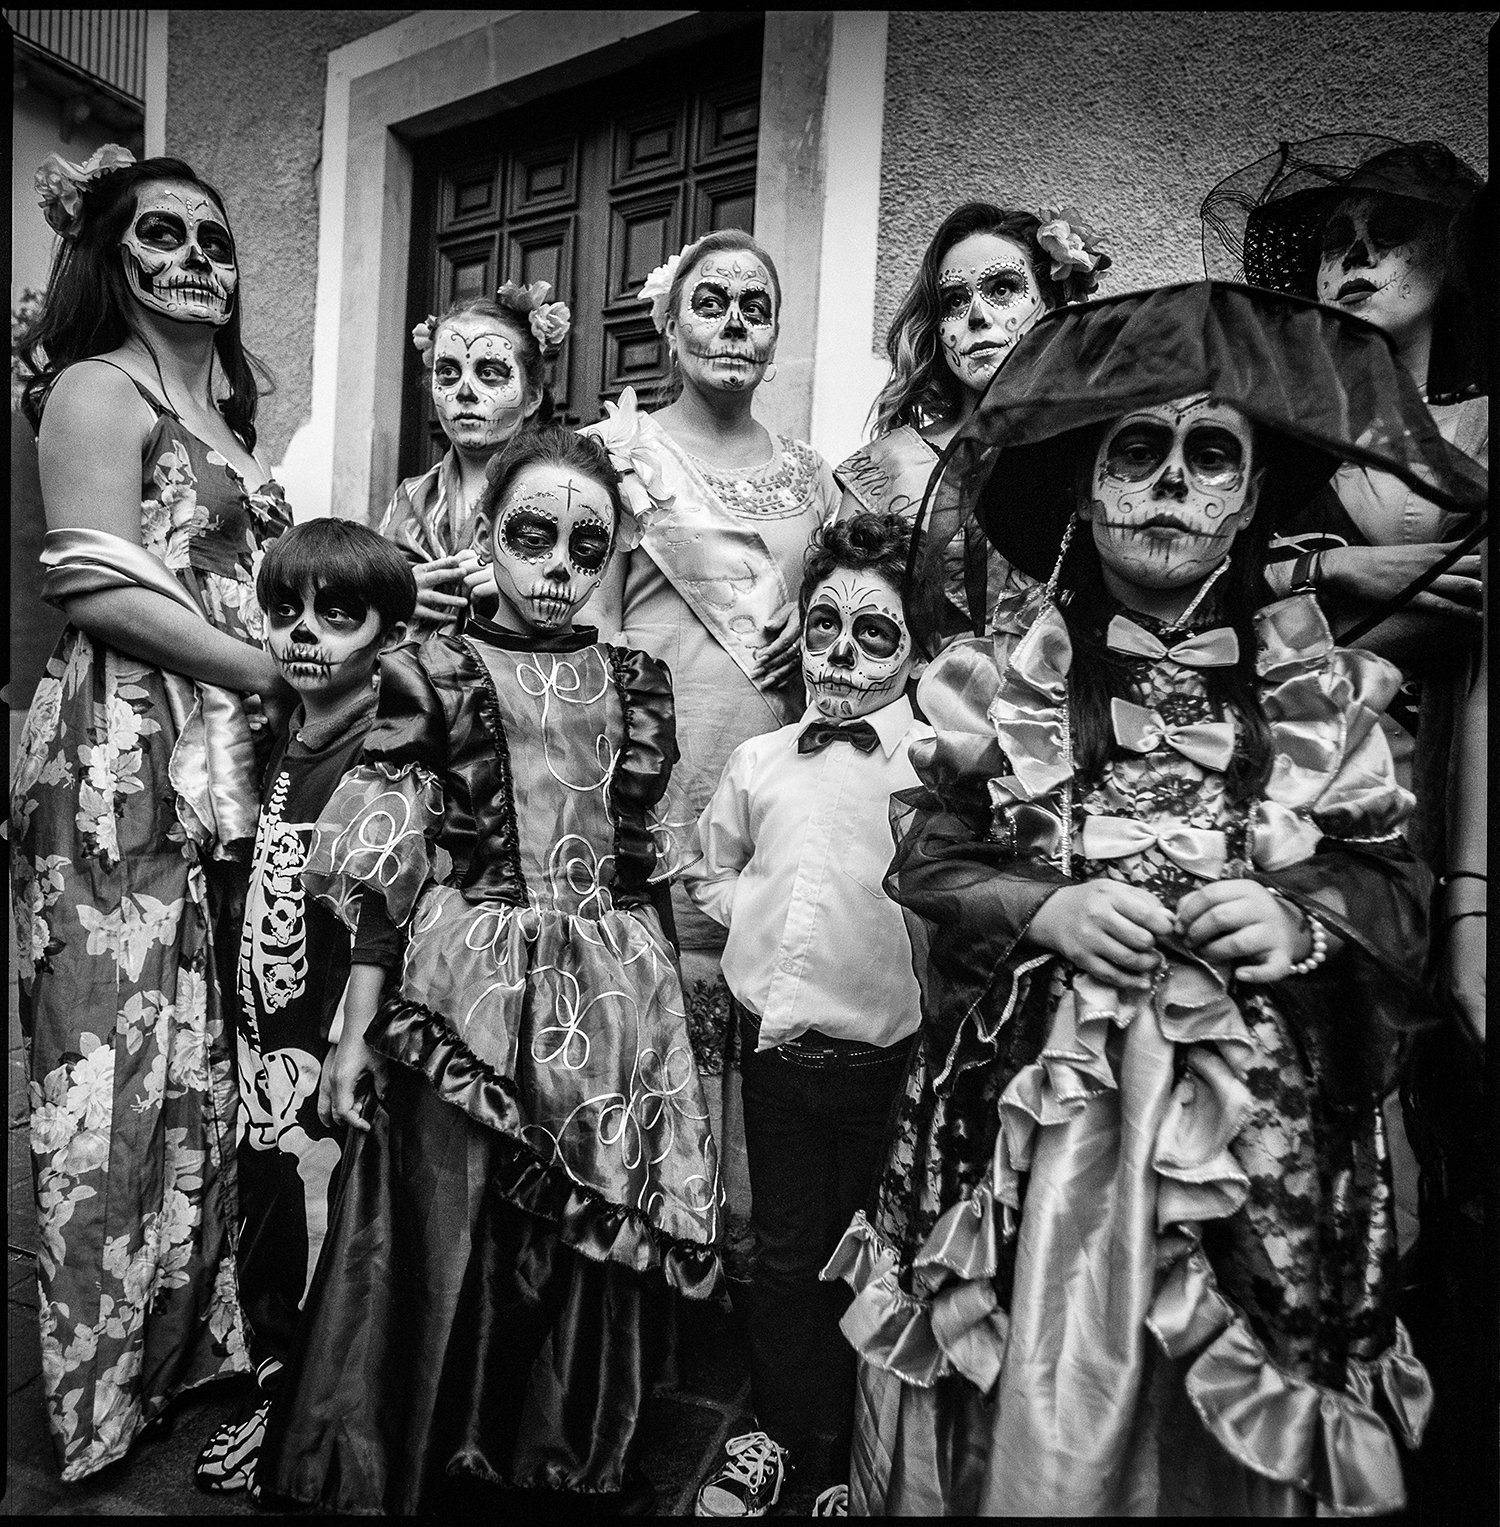 People waiting to join Day of the Dead parade Guanajuato, Mexico 2018